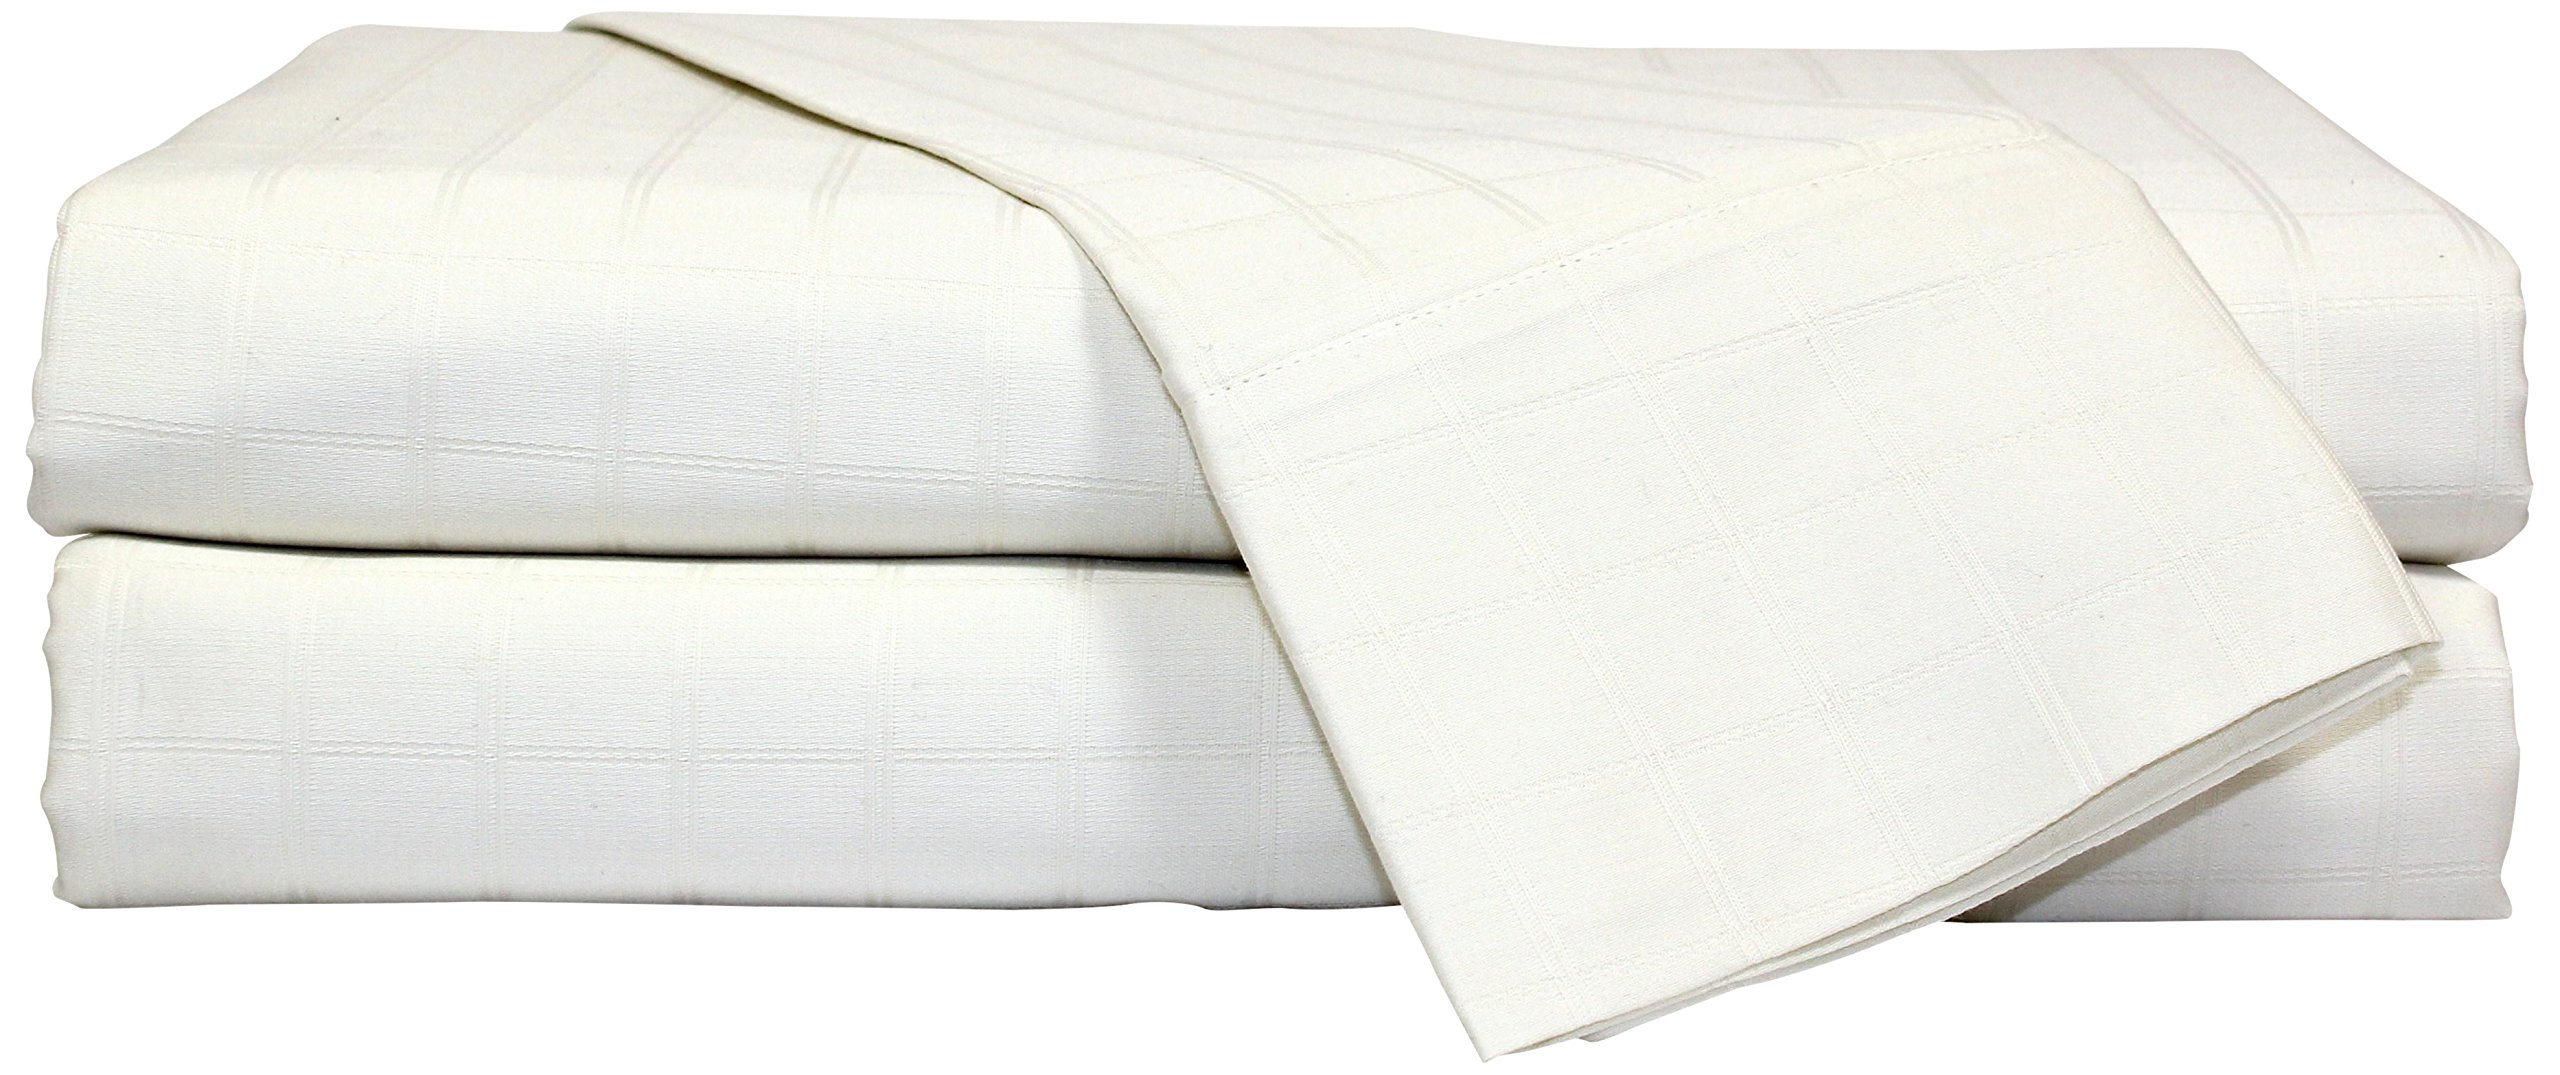 Devonshire Collection of Nottingham 450 Thread Count 1-inch Square Window Pane Sheet Set Solid Hem, Extra Soft - Breathable & Cool Sheets - Hypoallergenic, Ivory, Queen